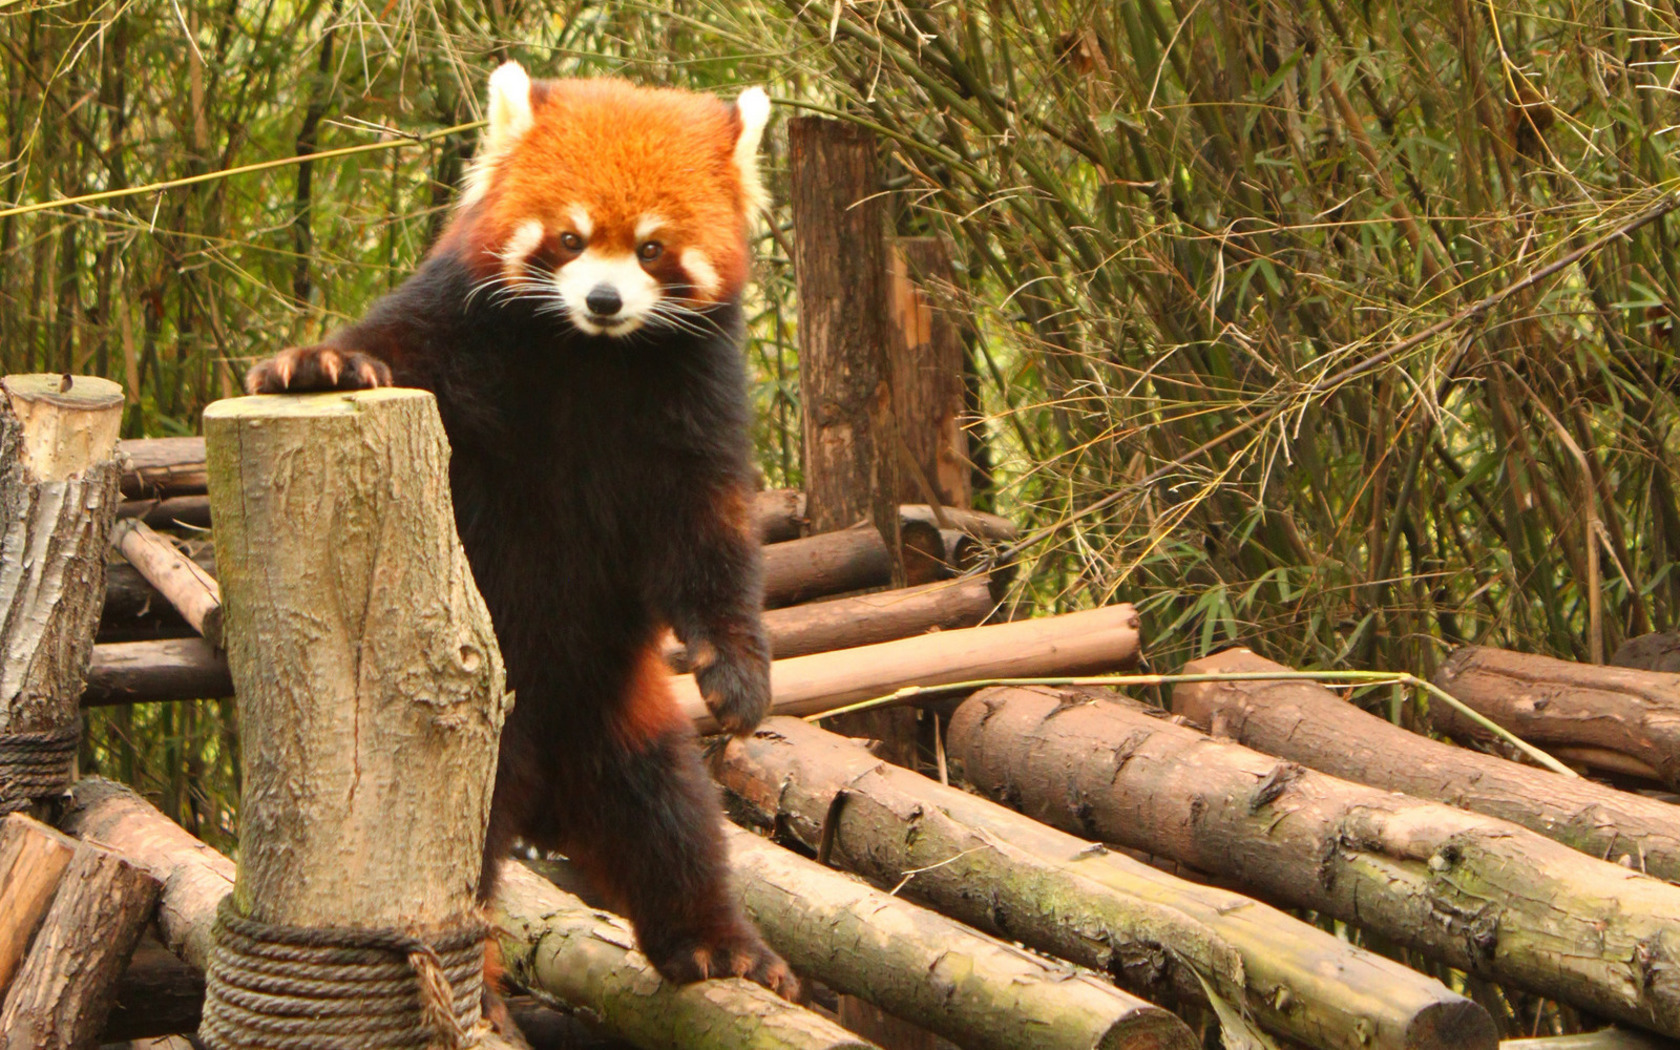 37052 download wallpaper Animals, Pandas screensavers and pictures for free